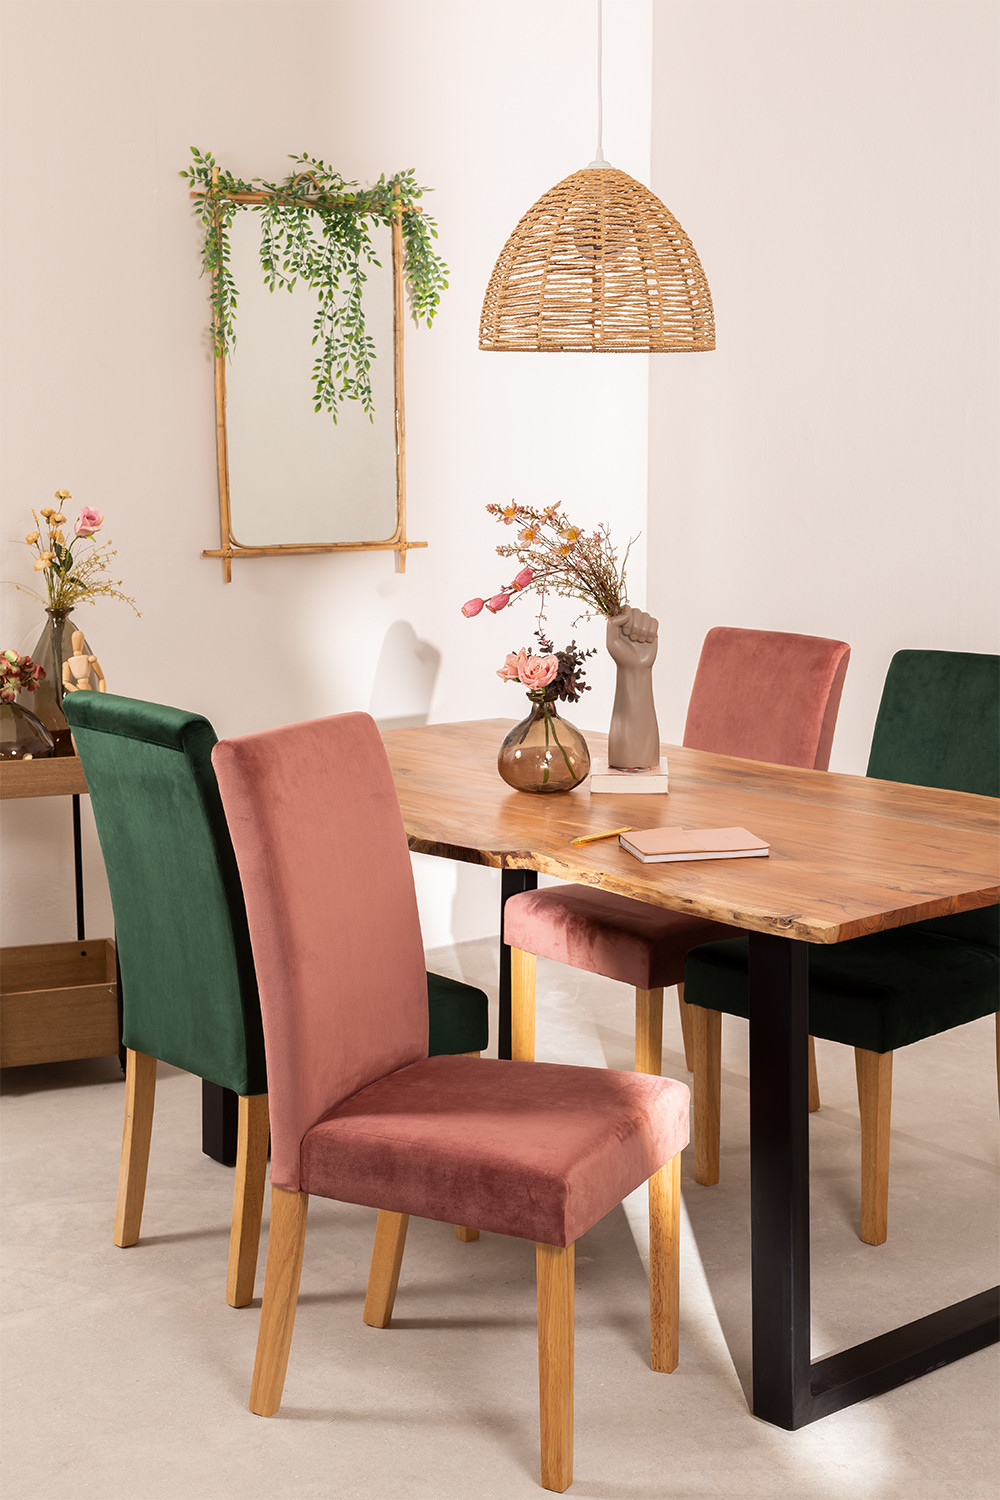 Pack of 2 Velvet Dining Chairs Cindy, gallery image 1